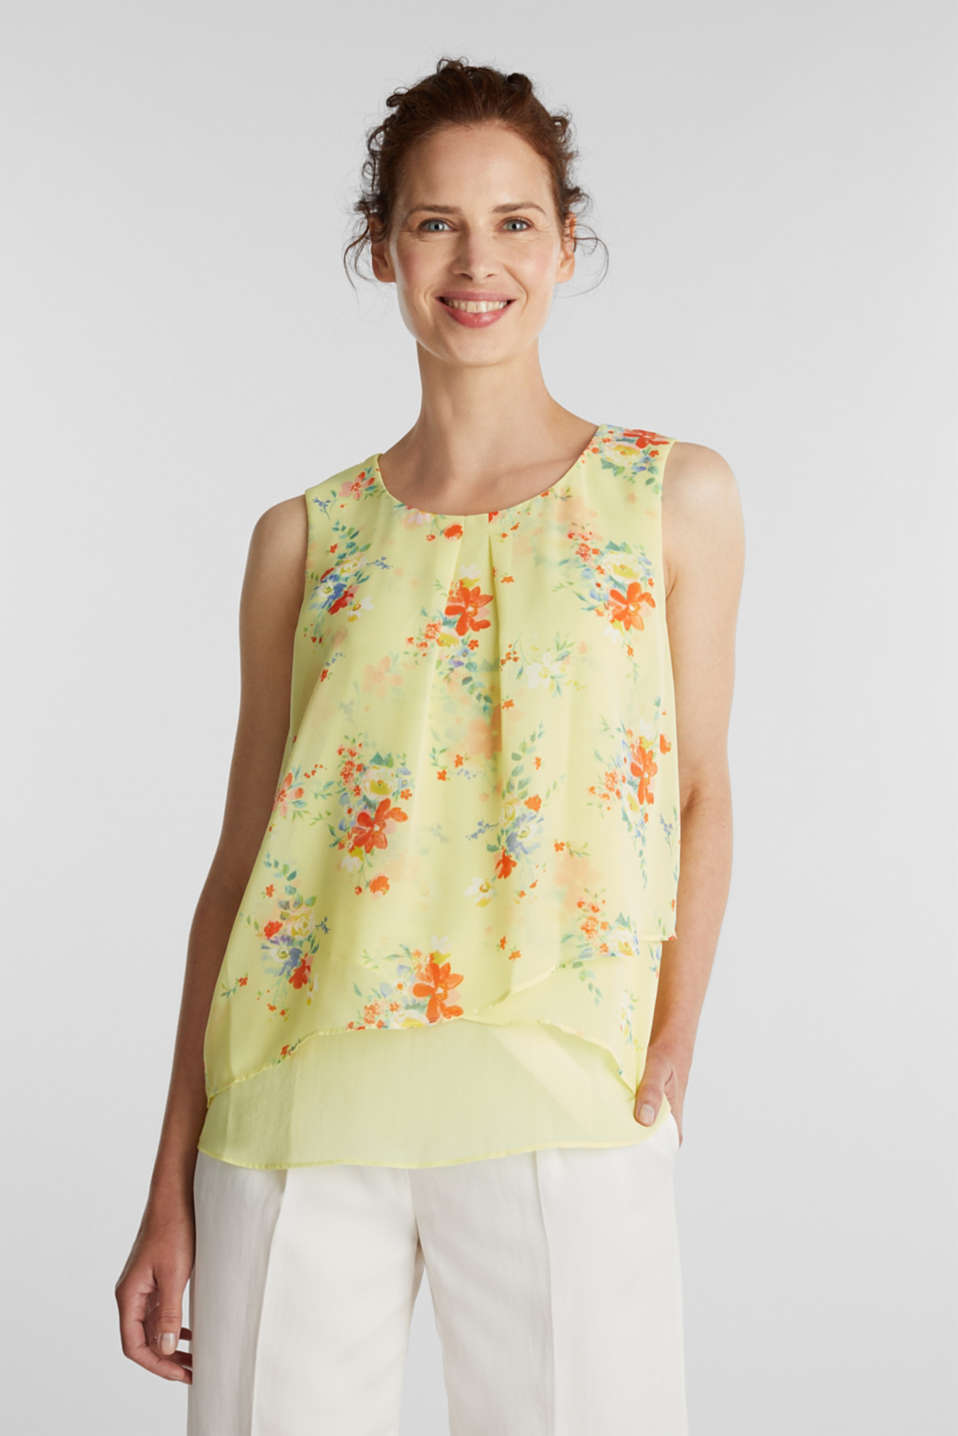 Esprit - Layered blouse top made of crêpe chiffon